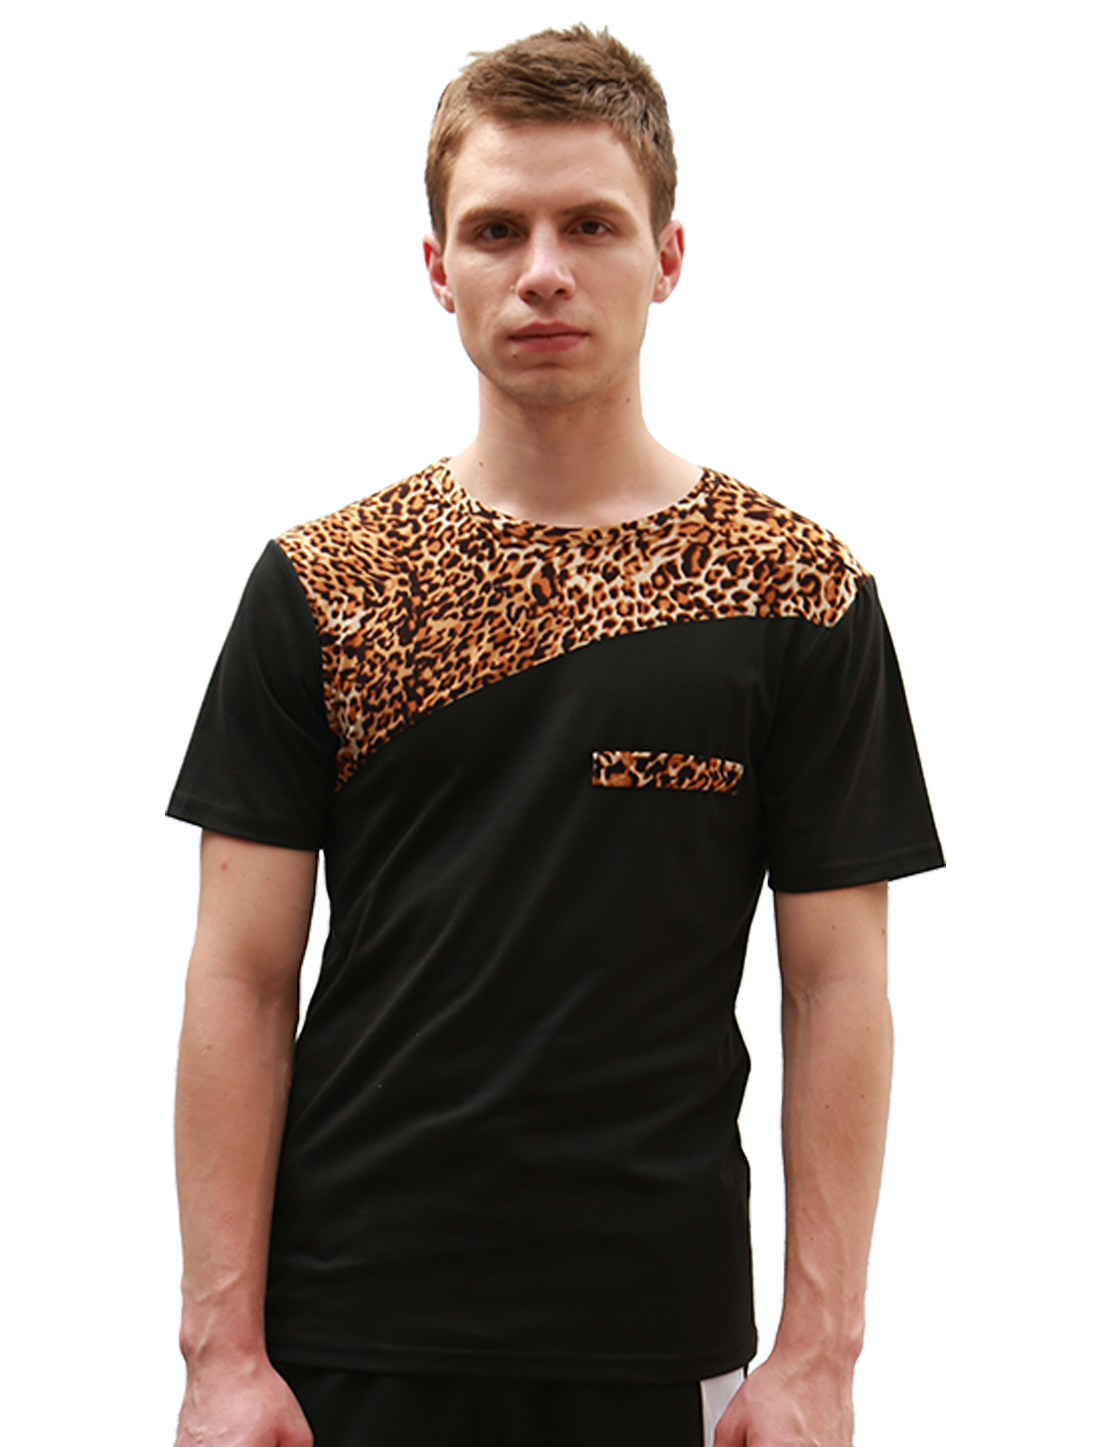 Men Black Leopard Prints Short Sleeve Pullover Design Slim Tee Shirt M